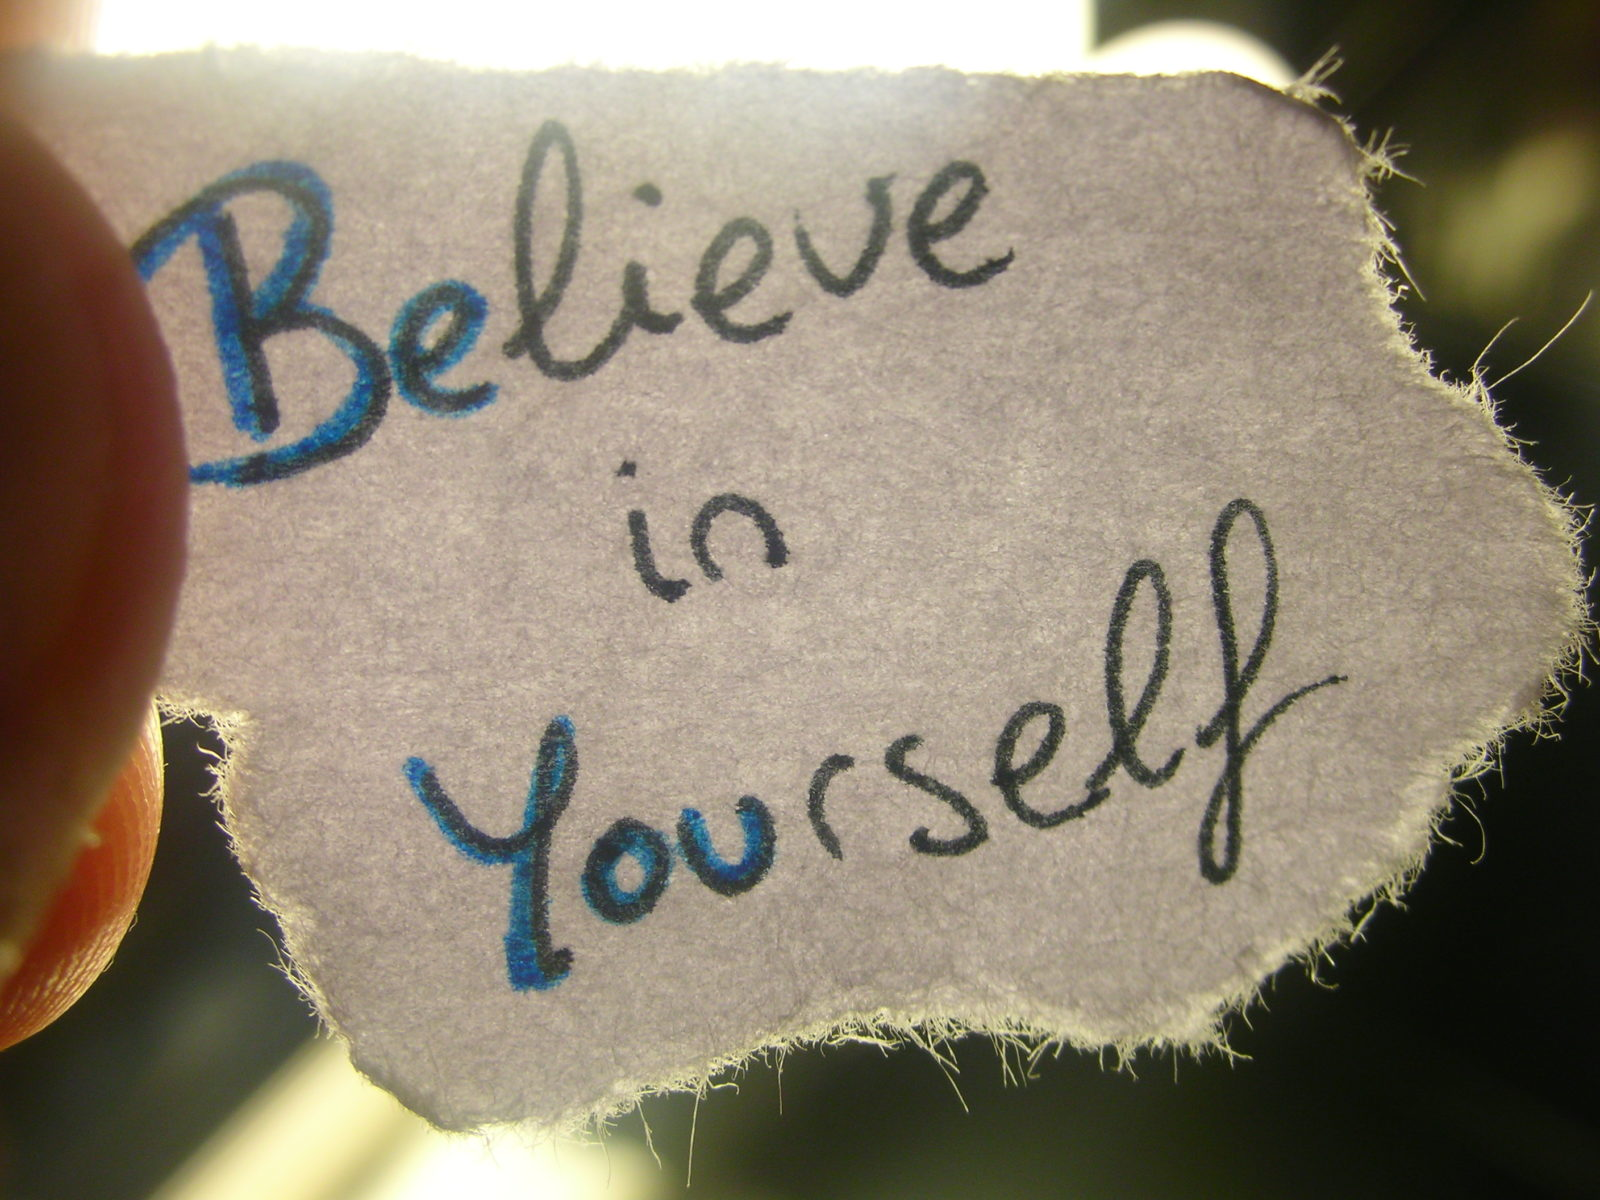 https://i1.wp.com/www.businesshorsepower.com/wp-content/uploads/2014/09/believe_in_yourself.jpg